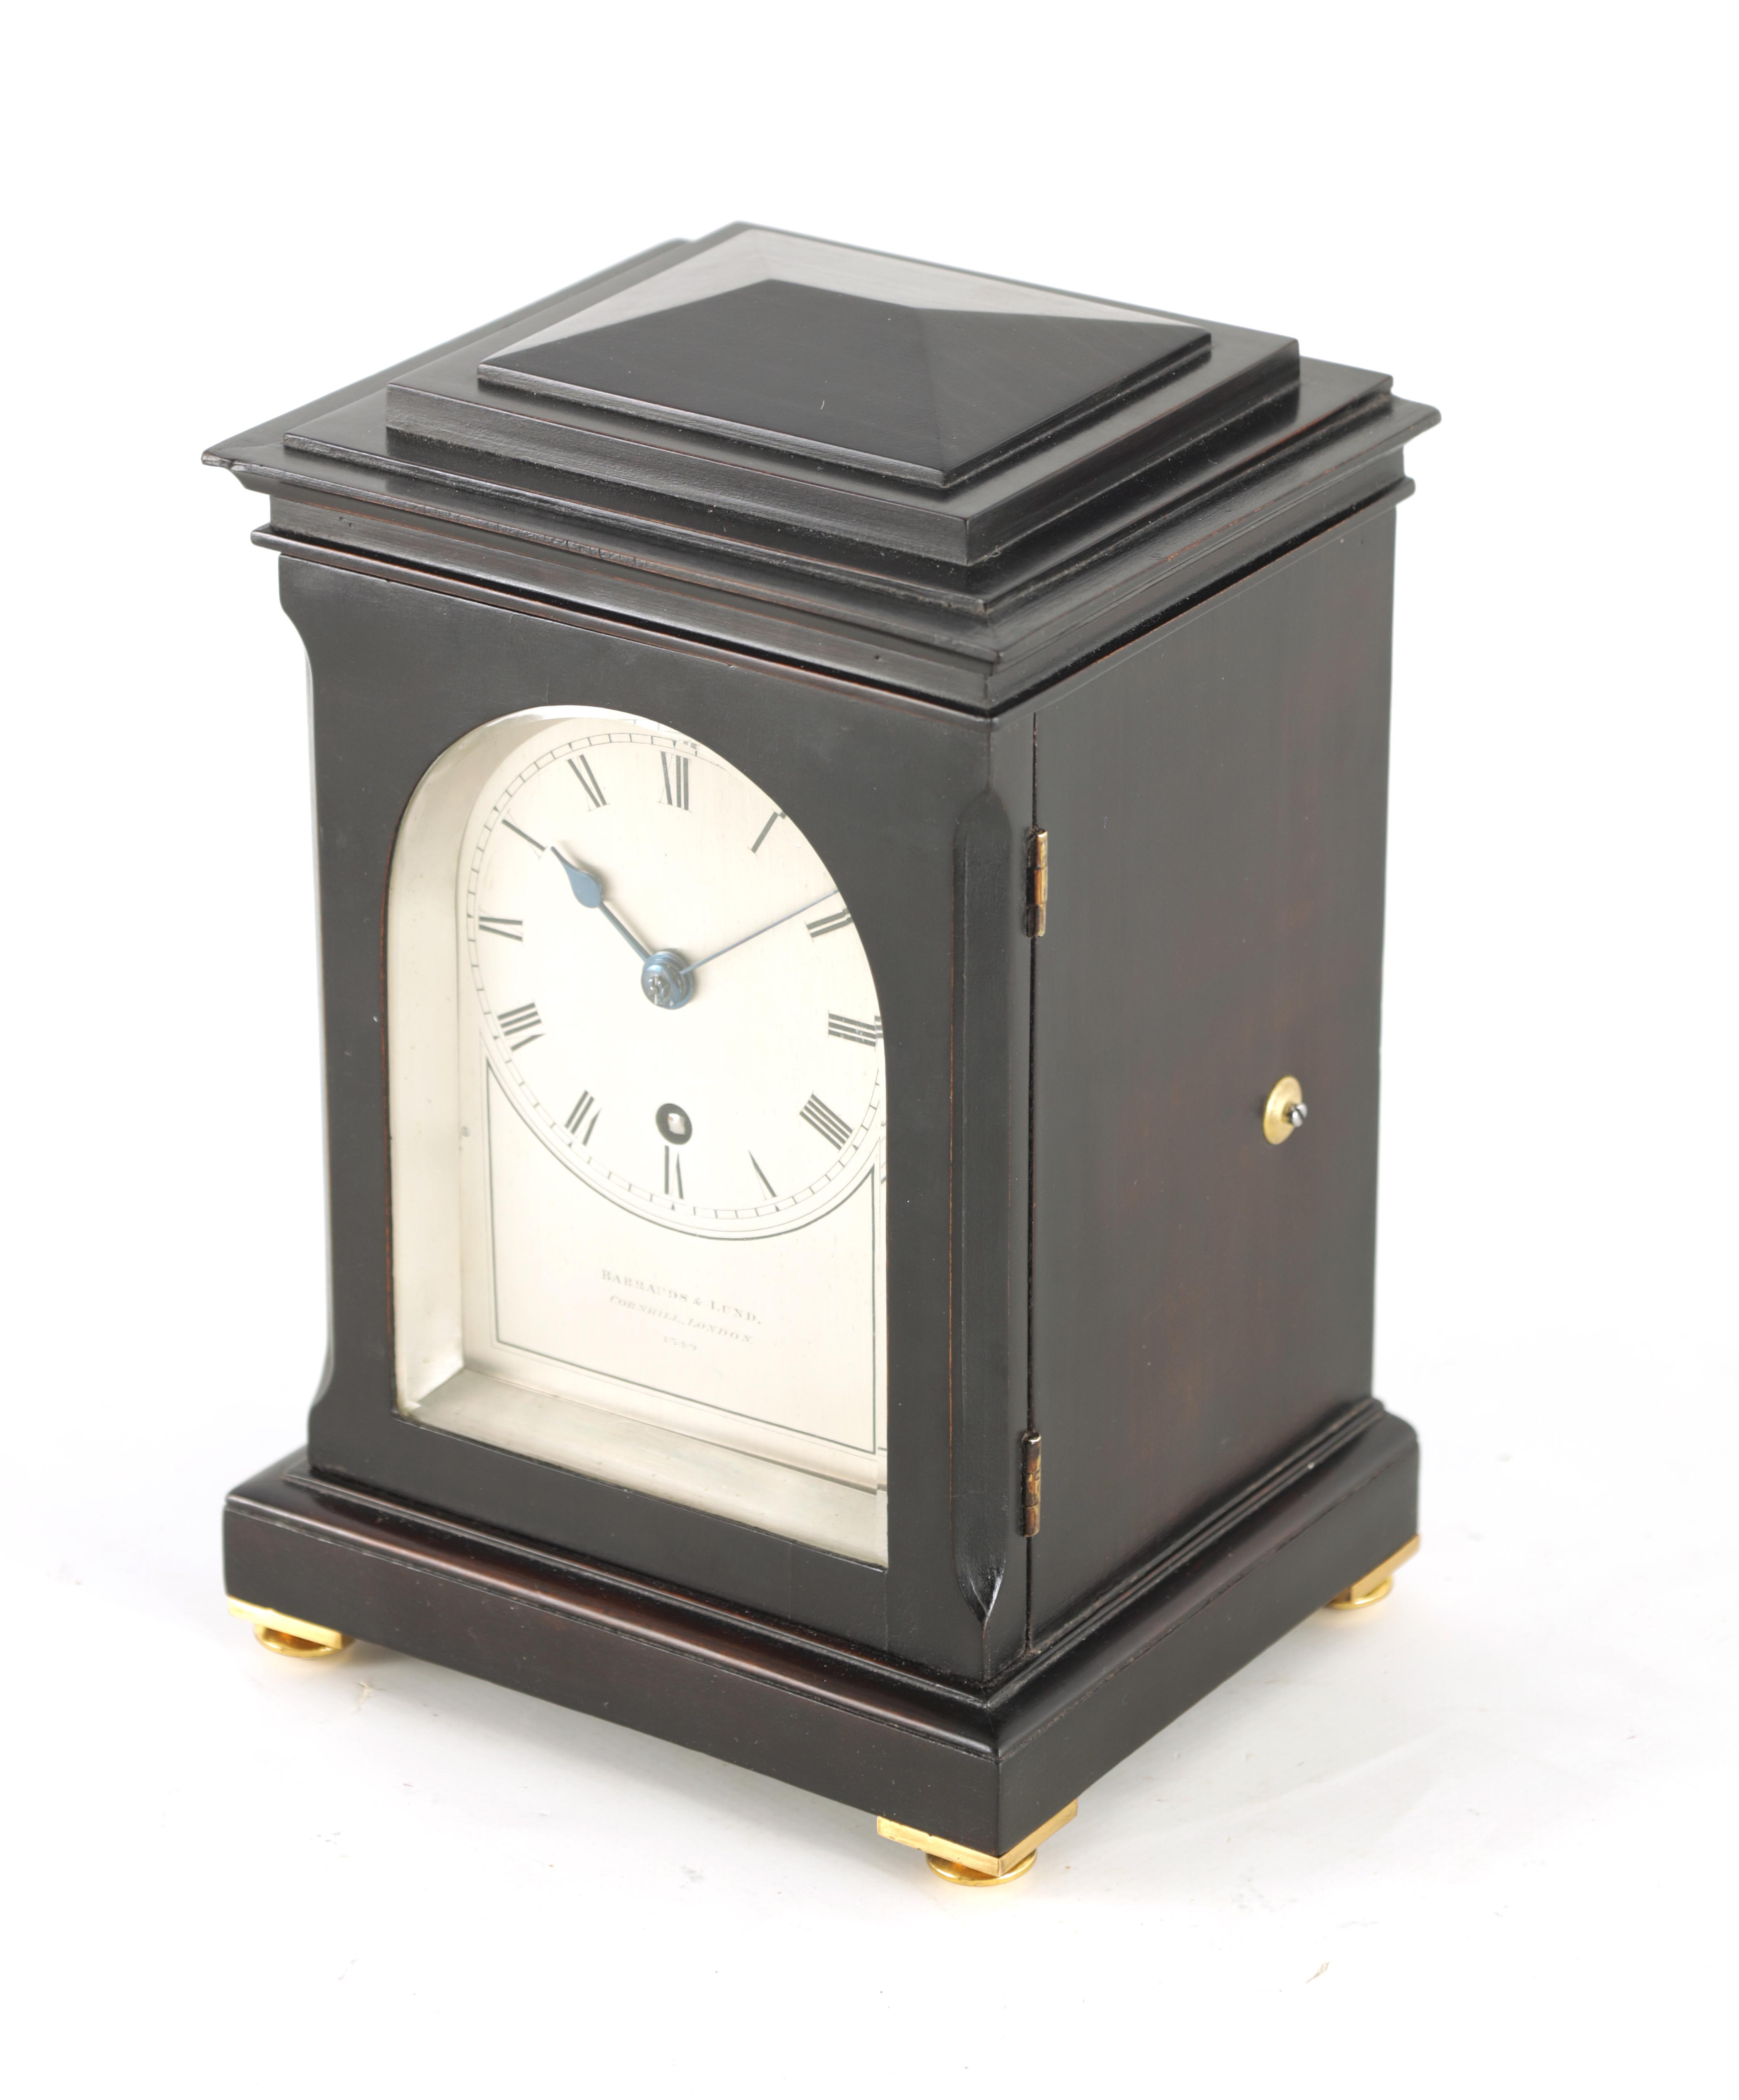 BARRAUDS & LUND, CORNHILL, LONDON. 1549 A FINE EARLY 19TH CENTURY REGENCY EBONISED ENGLISH FUSEE - Image 2 of 8